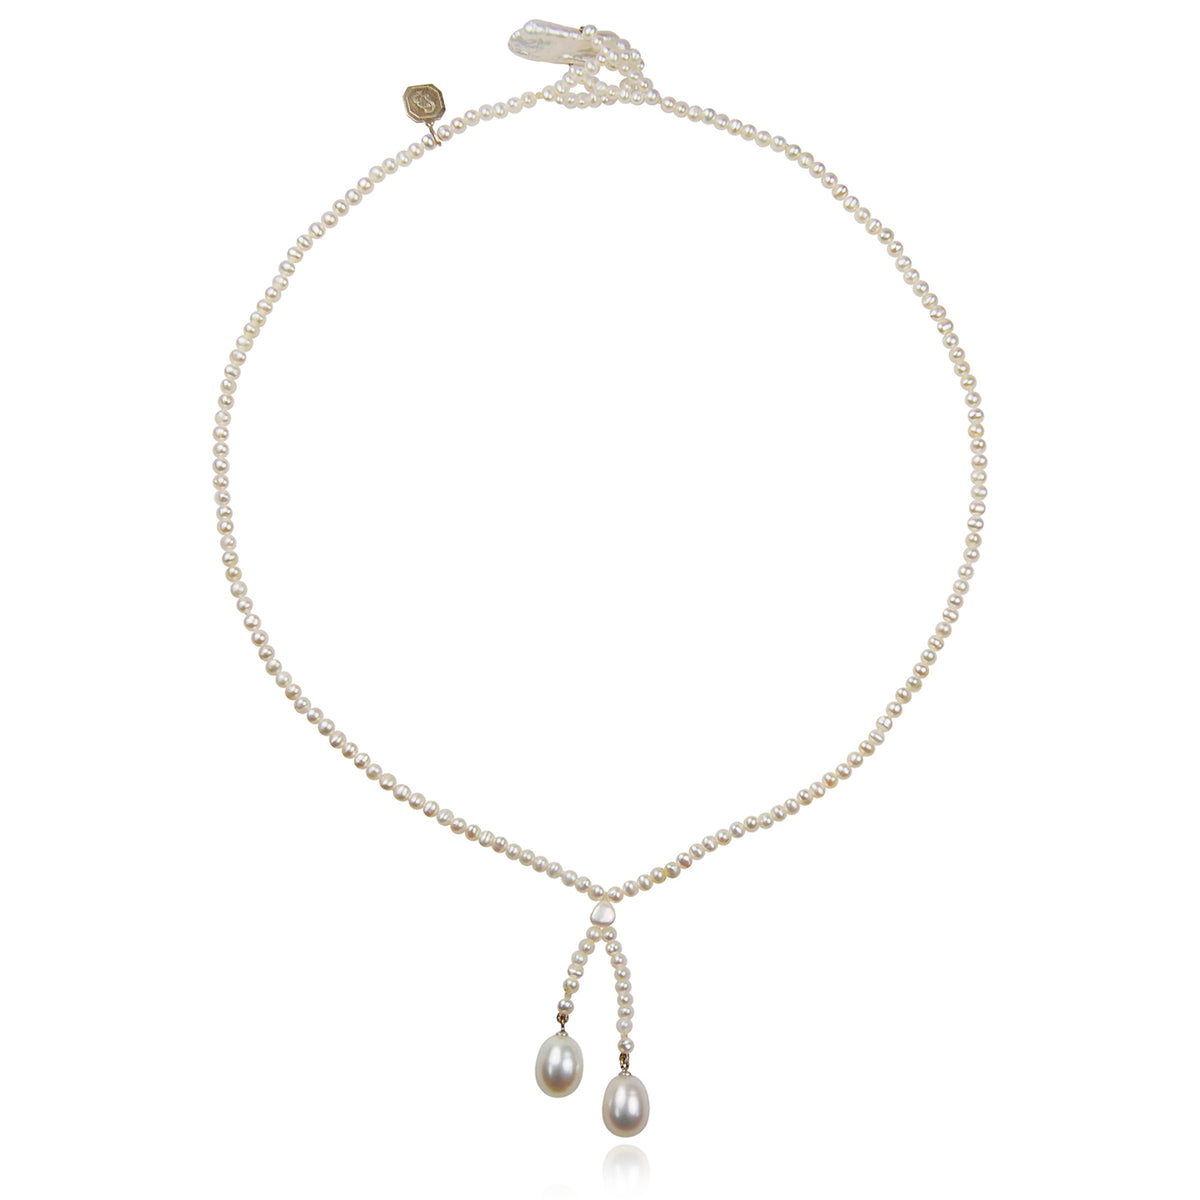 White Seed & Freshwater Pearl 'Simple' Tassel Necklace